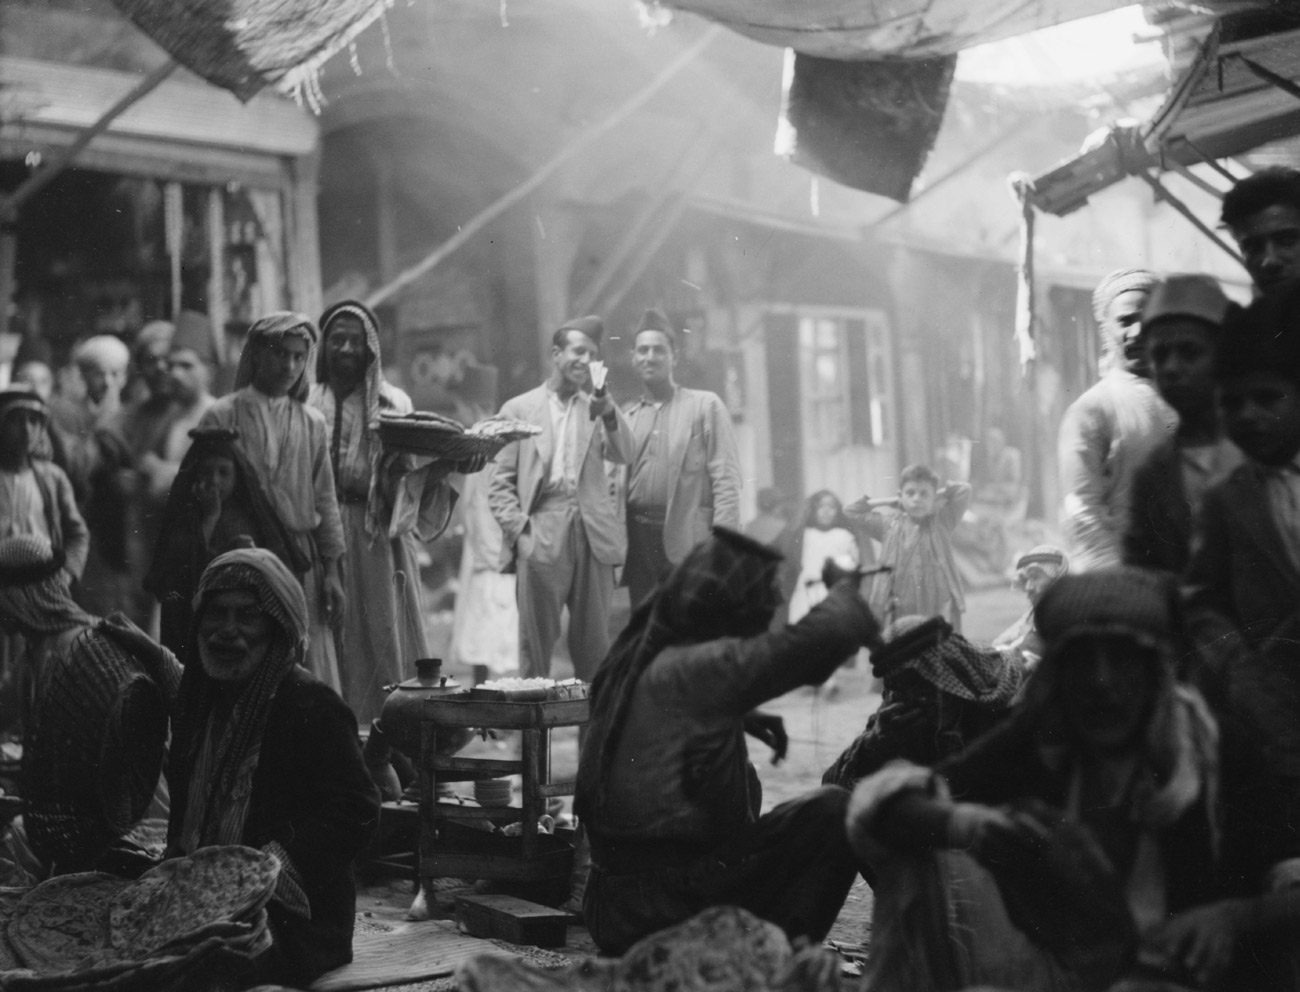 crowded marketplace mosul 1932 - <b>Khadija and Her Boys.</b> What It's Like Searching for Family Lost in the Islamic State - Заборона